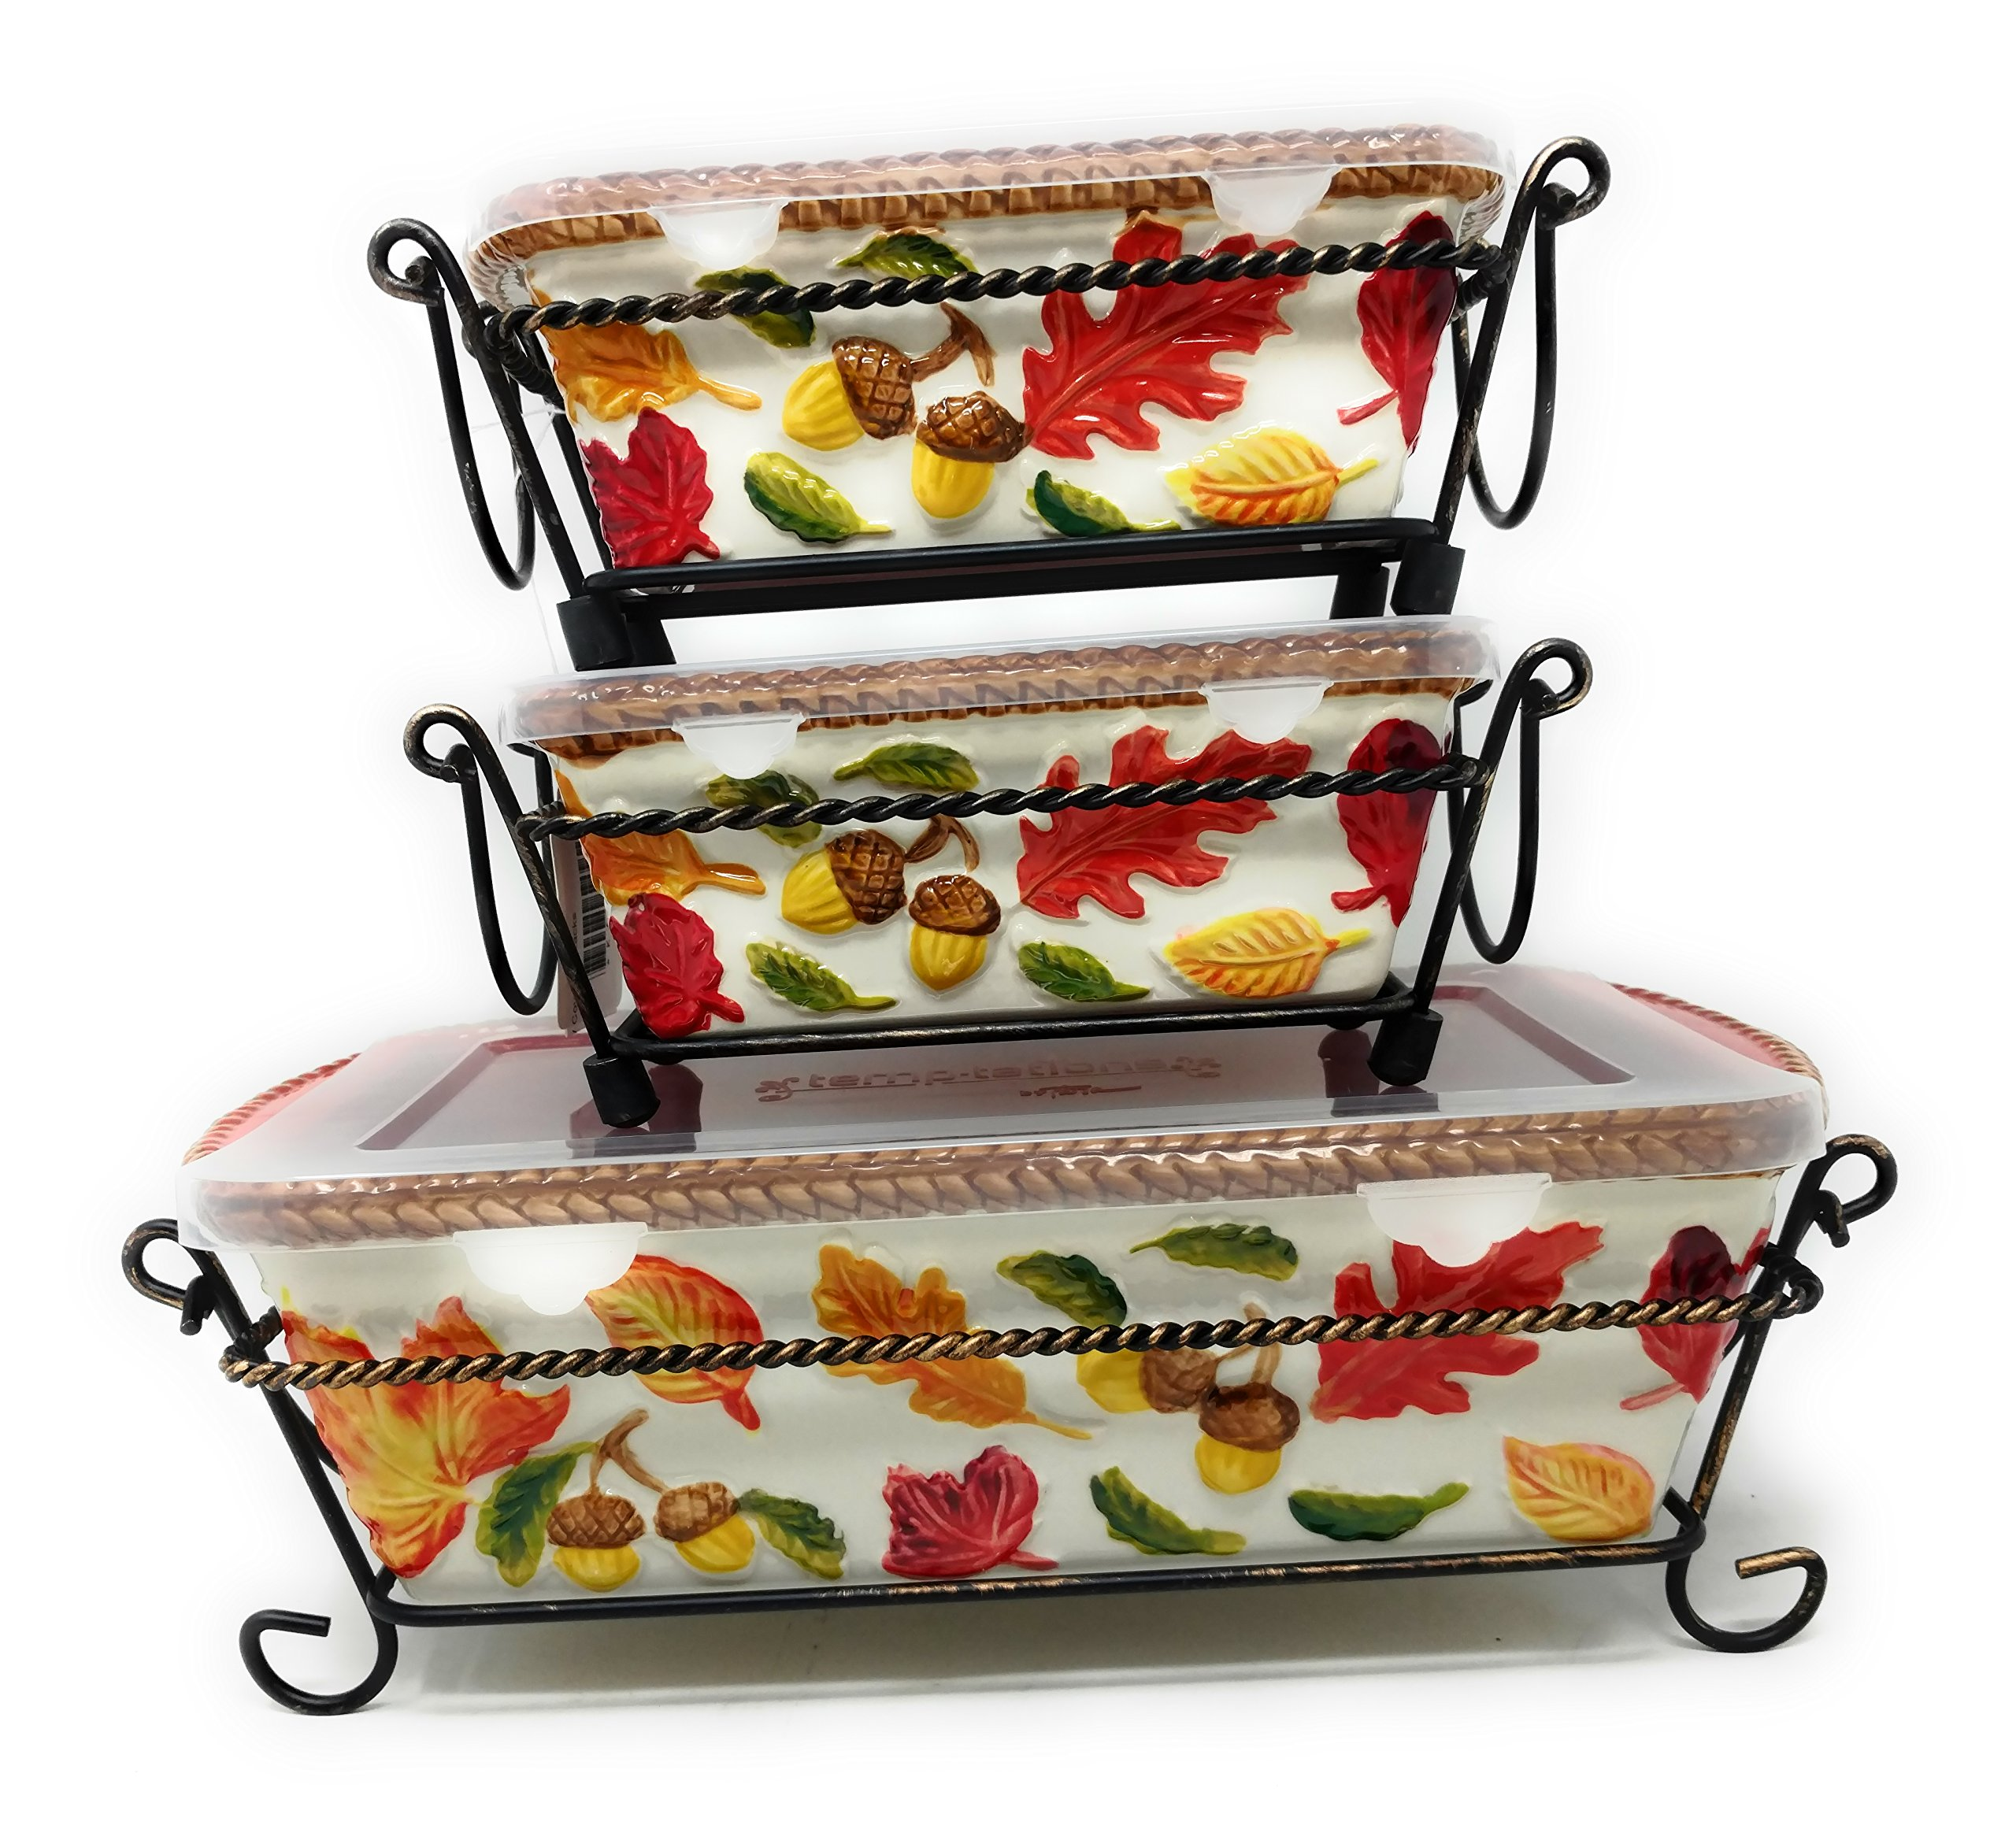 Temp-tations Set of 3 Loaf Pans w/ Plastic Covers & Wire Racks, Stoneware (Harvest)